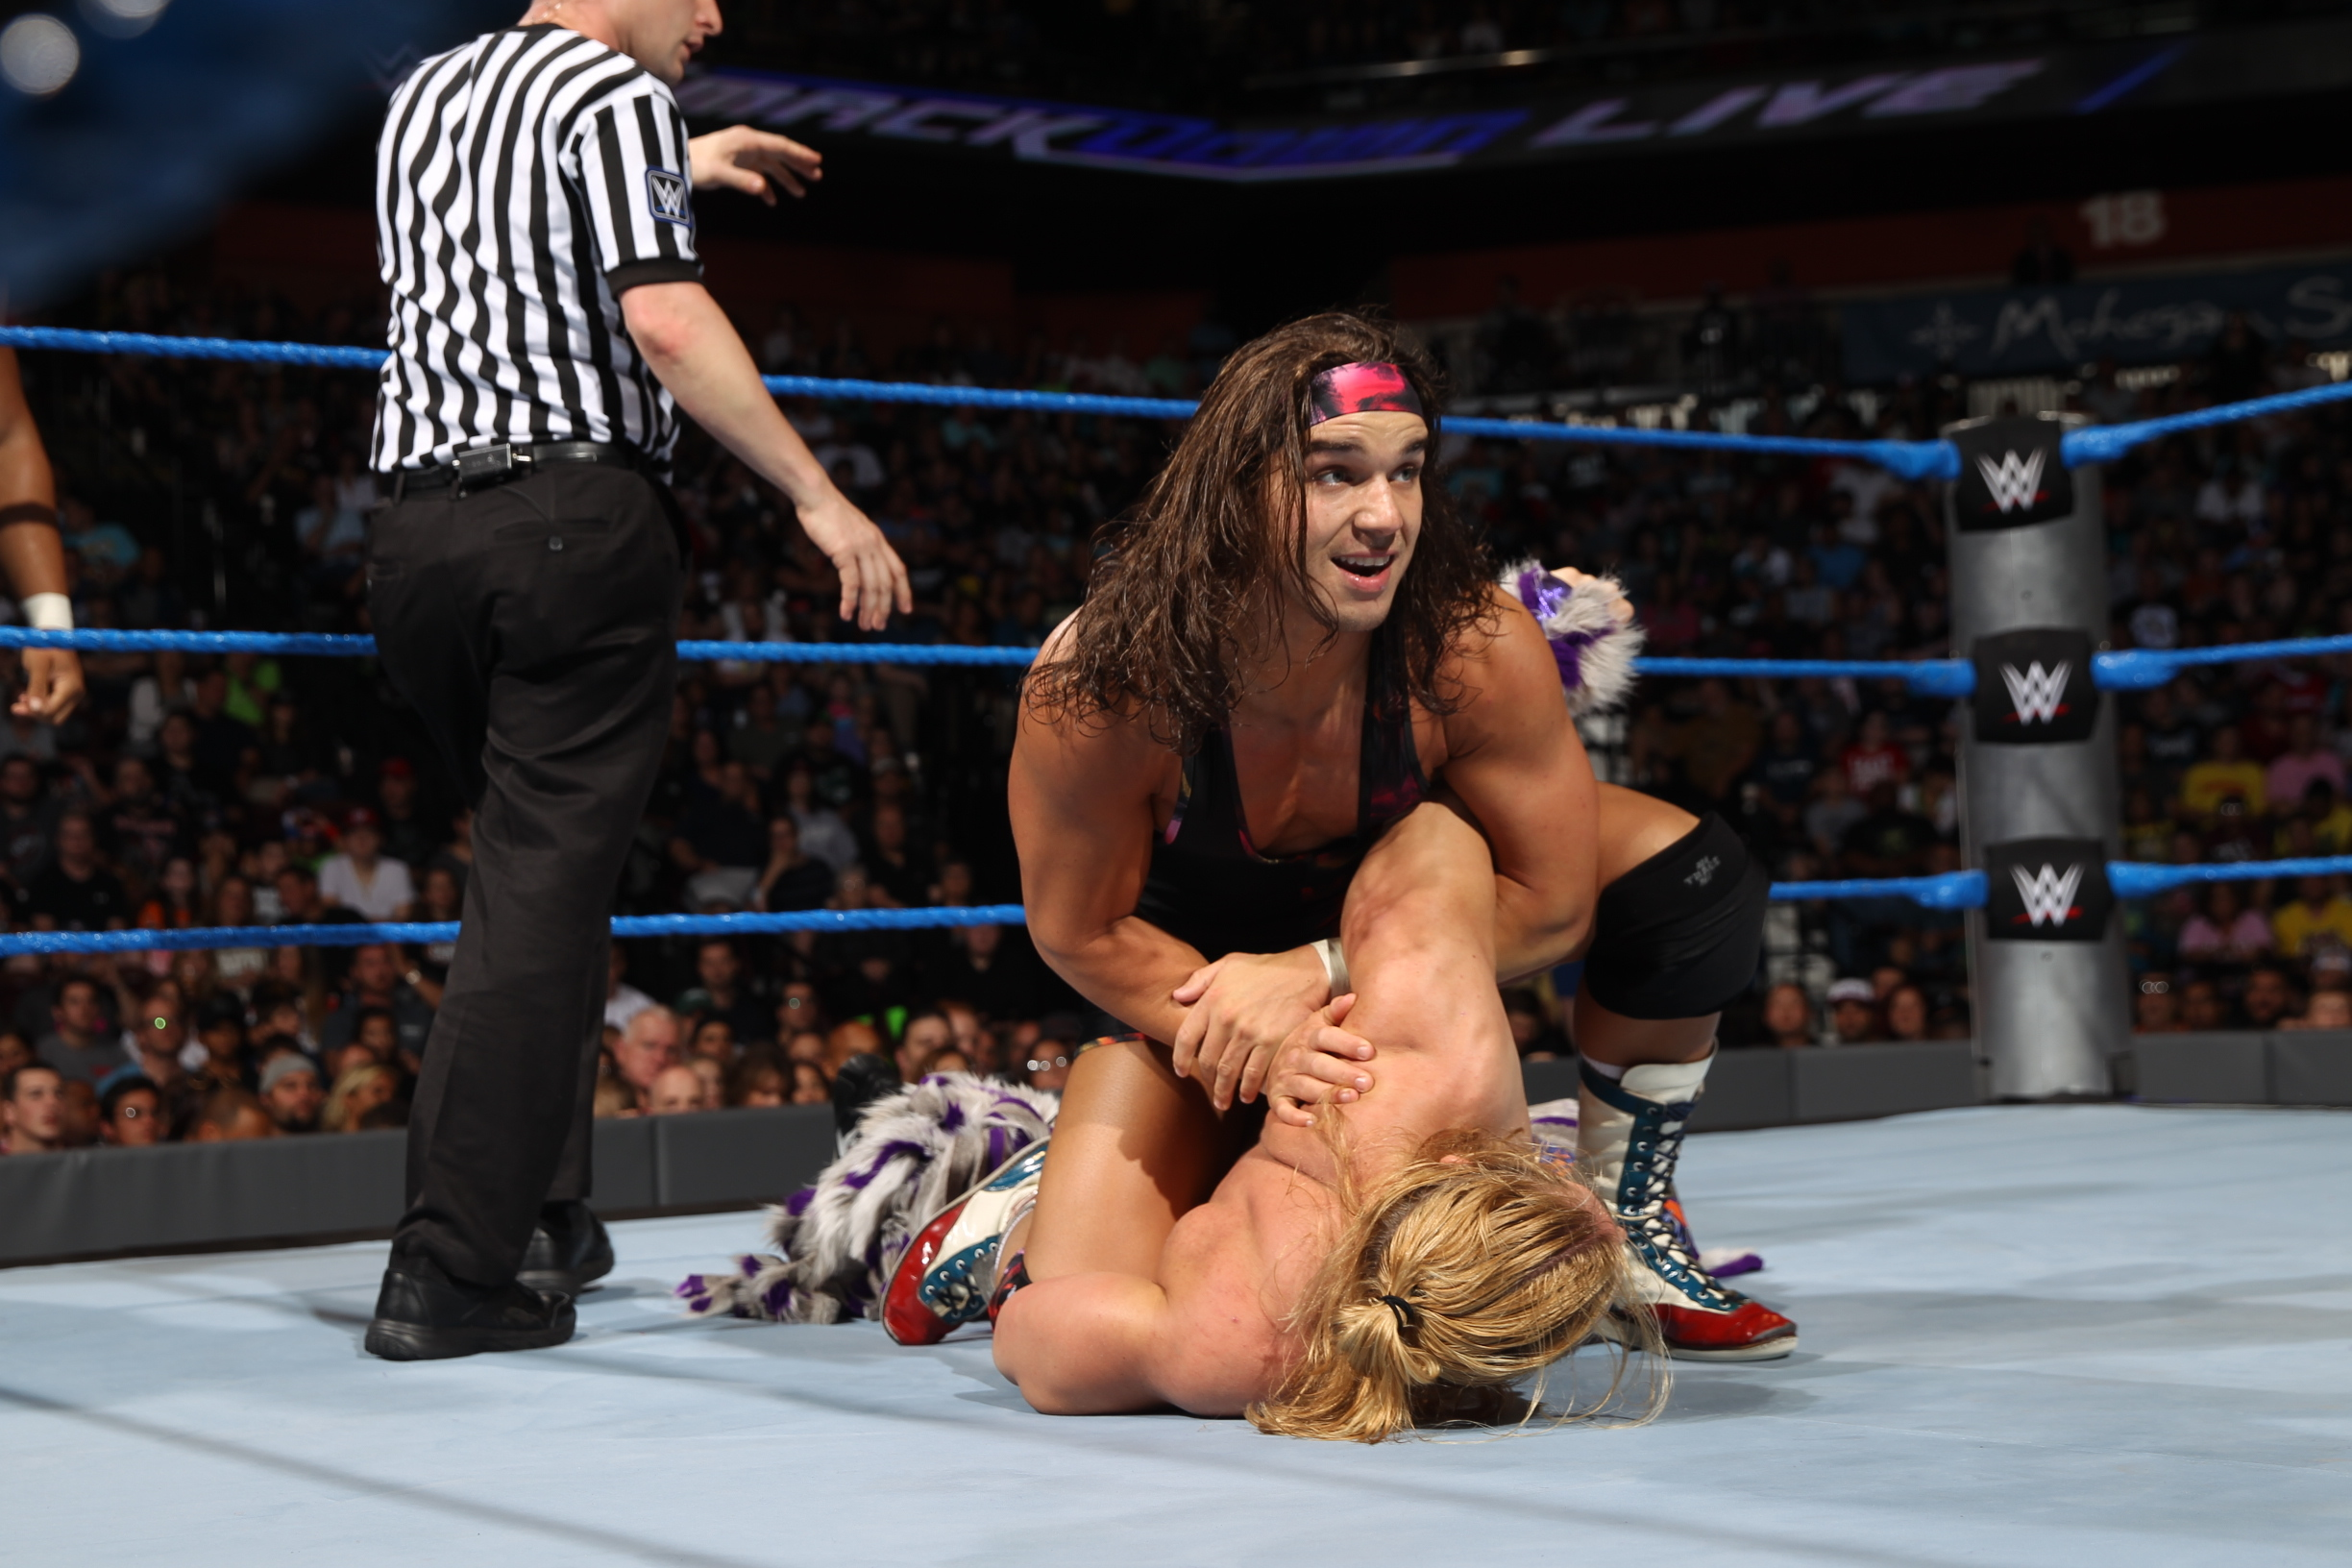 Chad Gable can't wait to entertain the Aberdeen wrestling fans.